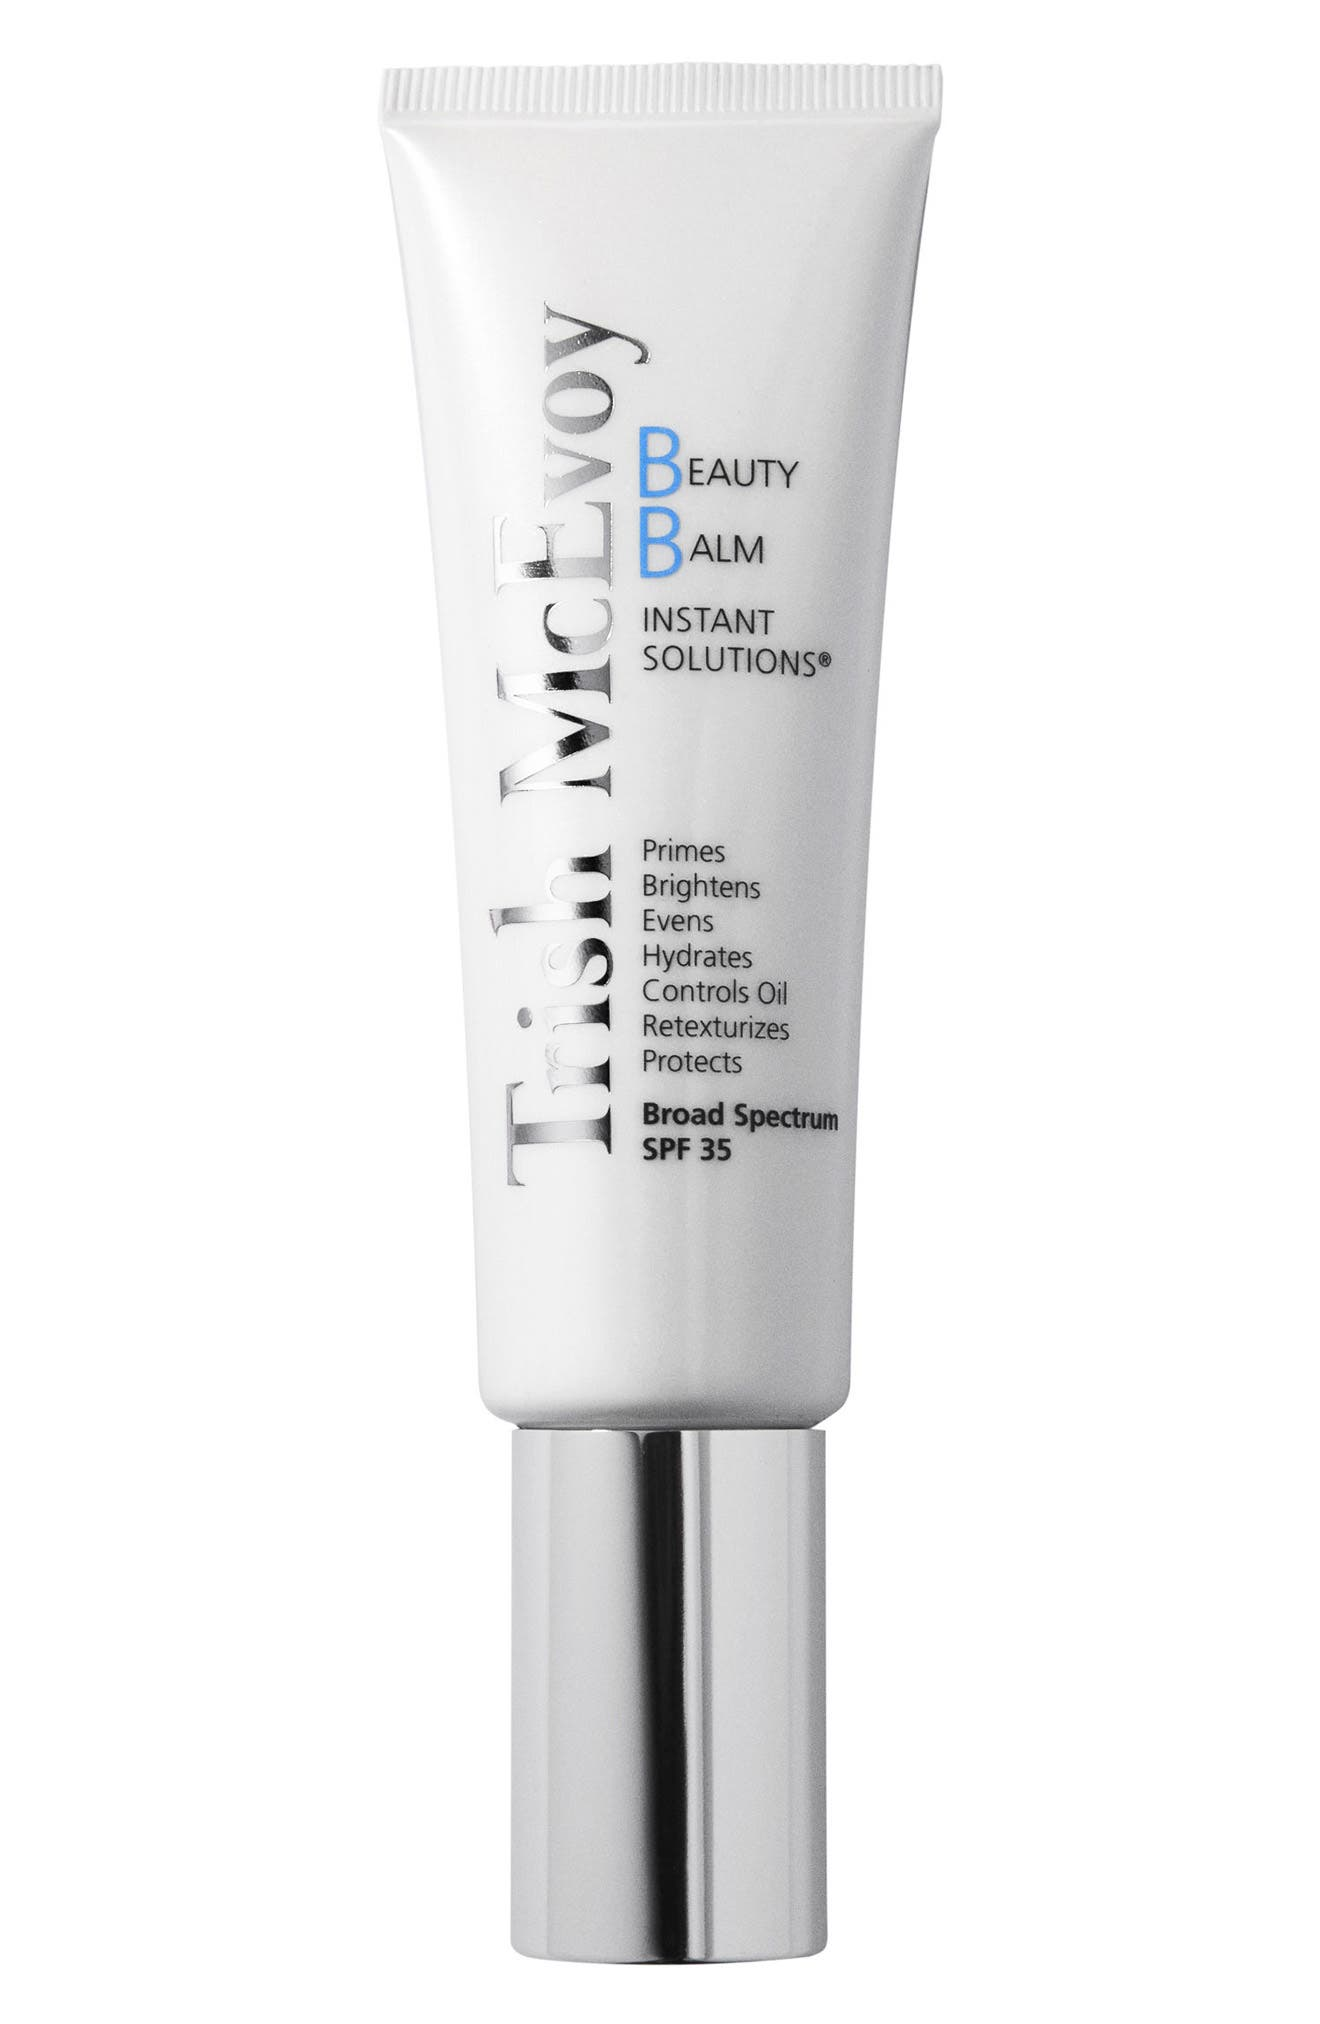 Alternate Image 1 Selected - Trish McEvoy Beauty Balm Instant Solutions® SPF 35